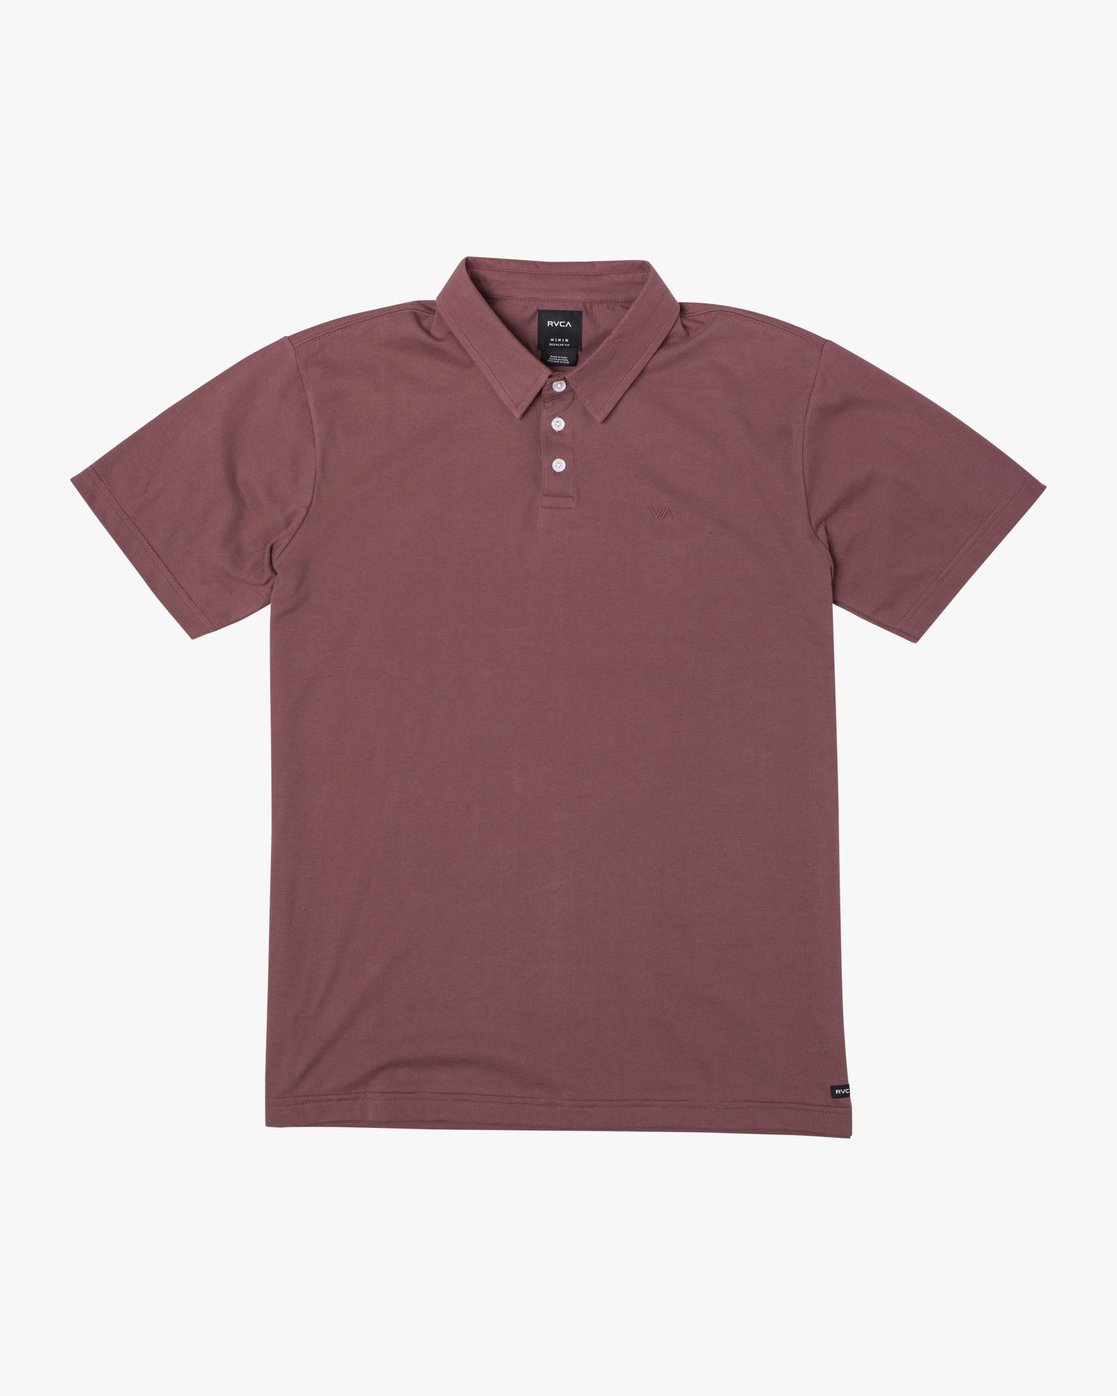 0 SURE THING III POLO SHIRT Red M9101RST RVCA